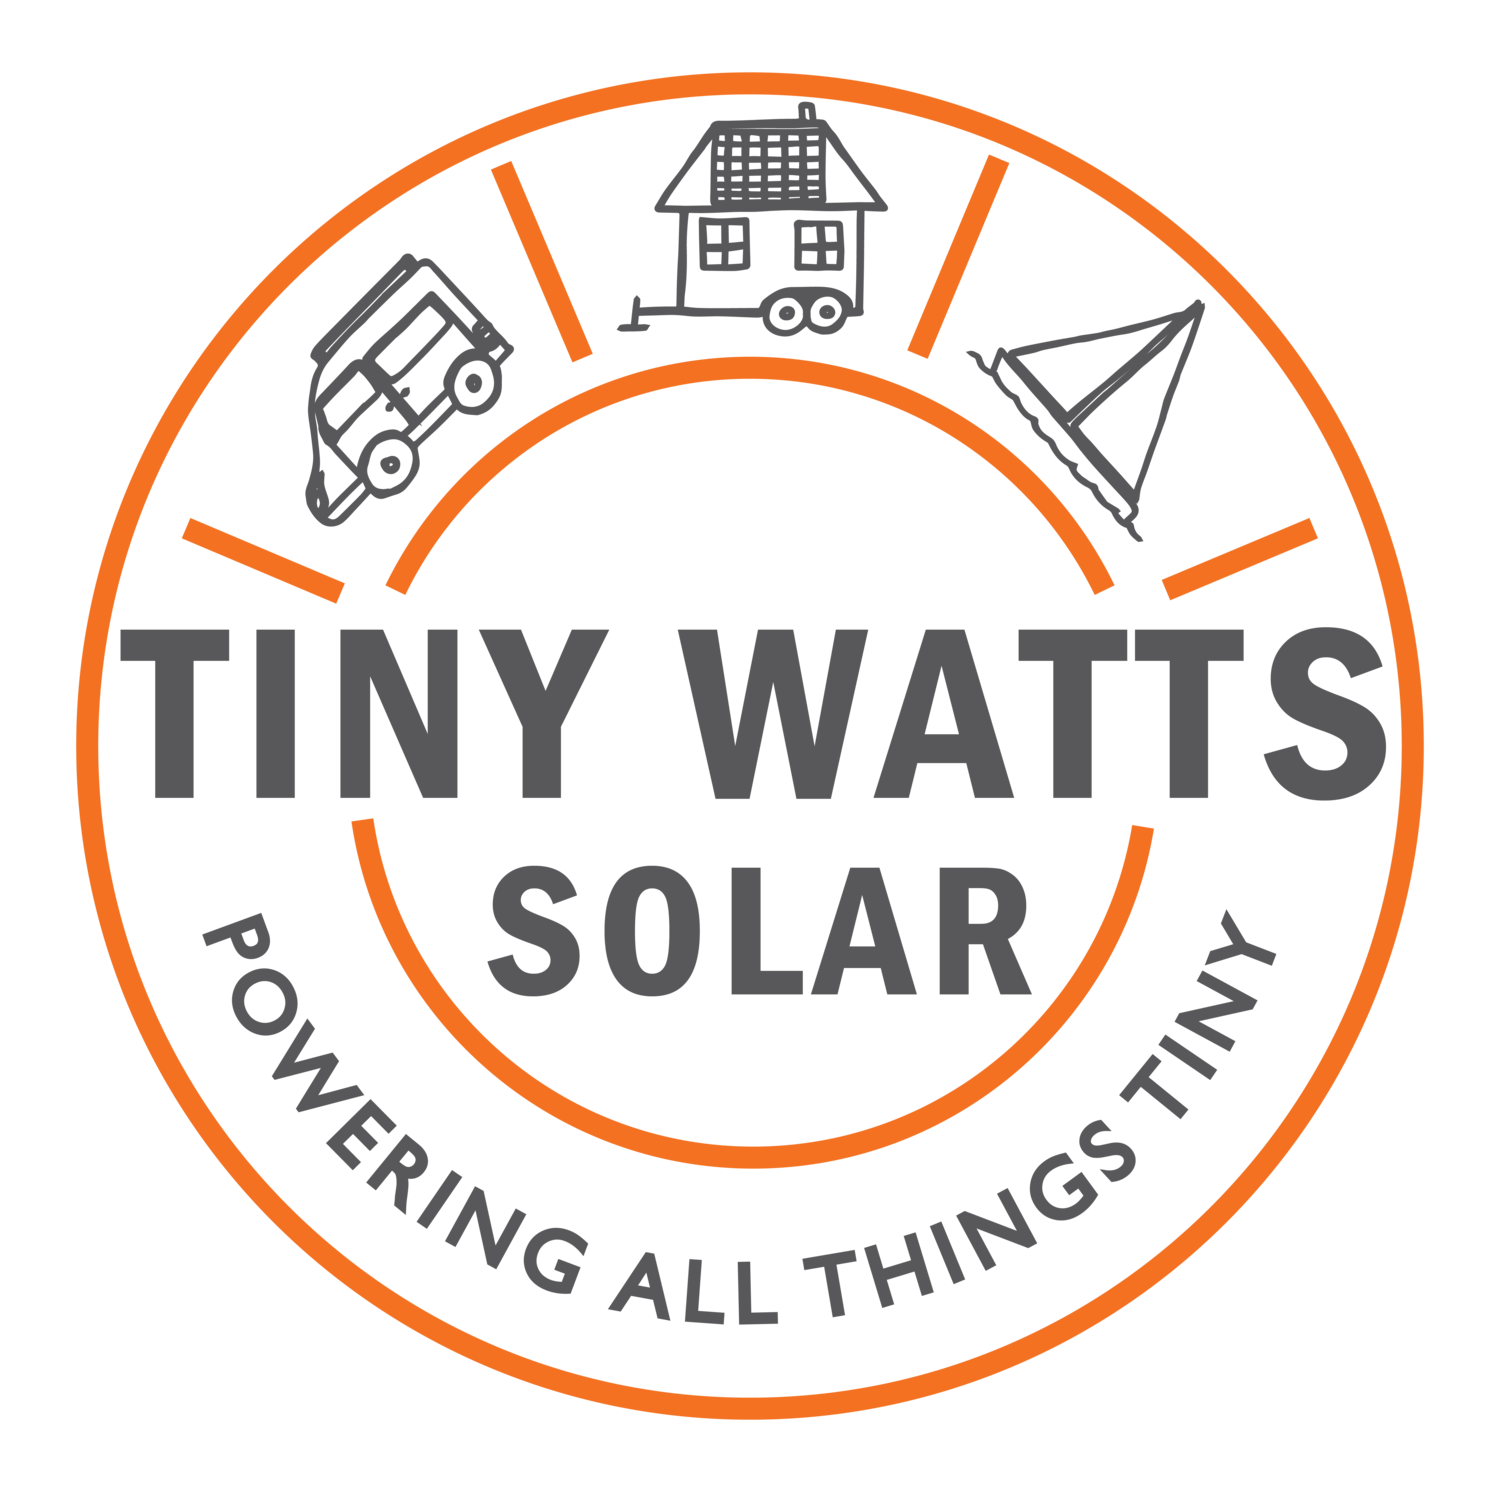 TINY WATTS SOLAR